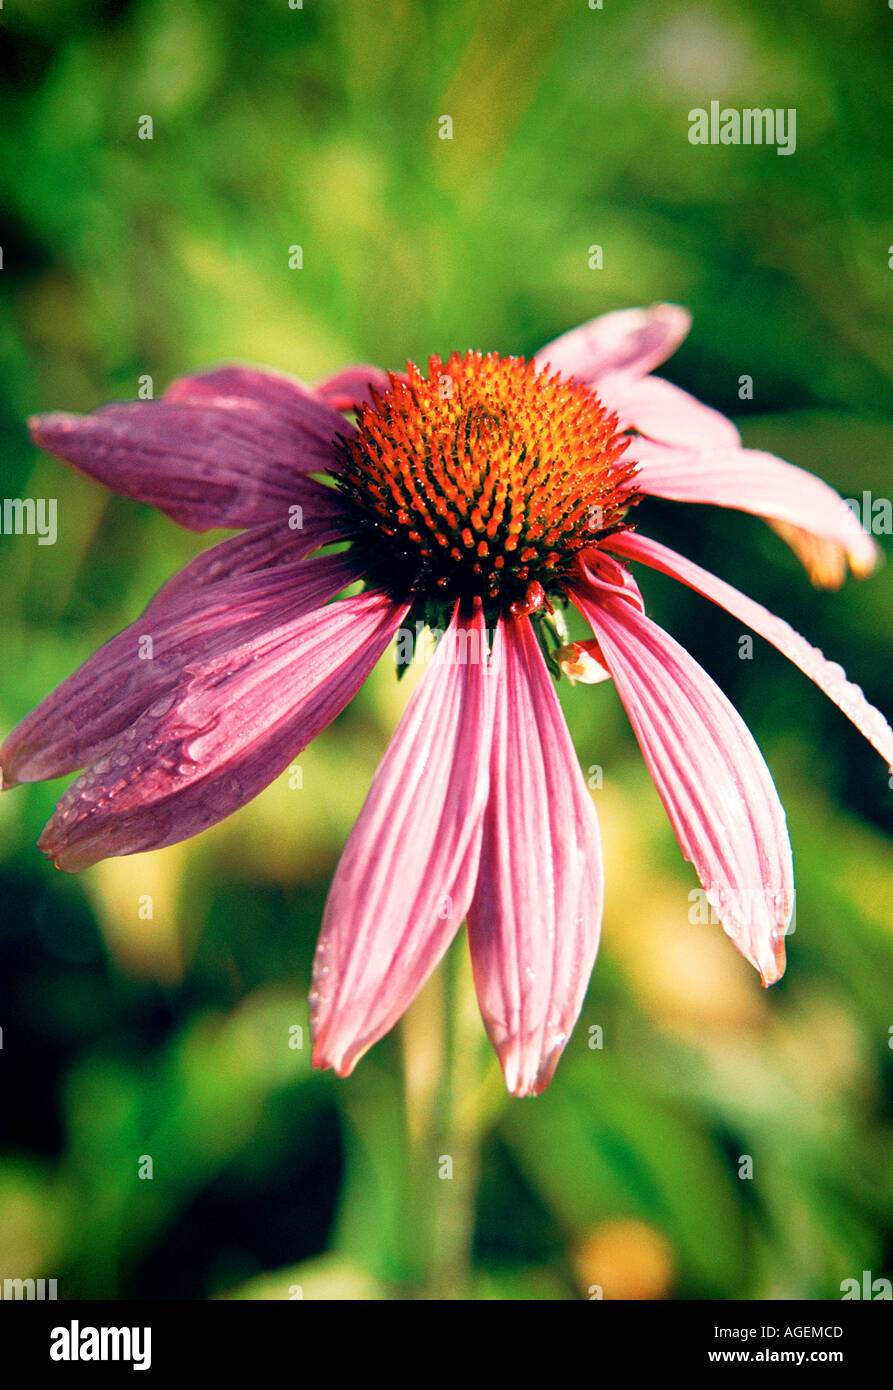 Echinacea purpurea purple coneflower that is used as a herbal medicine Close up - Stock Image